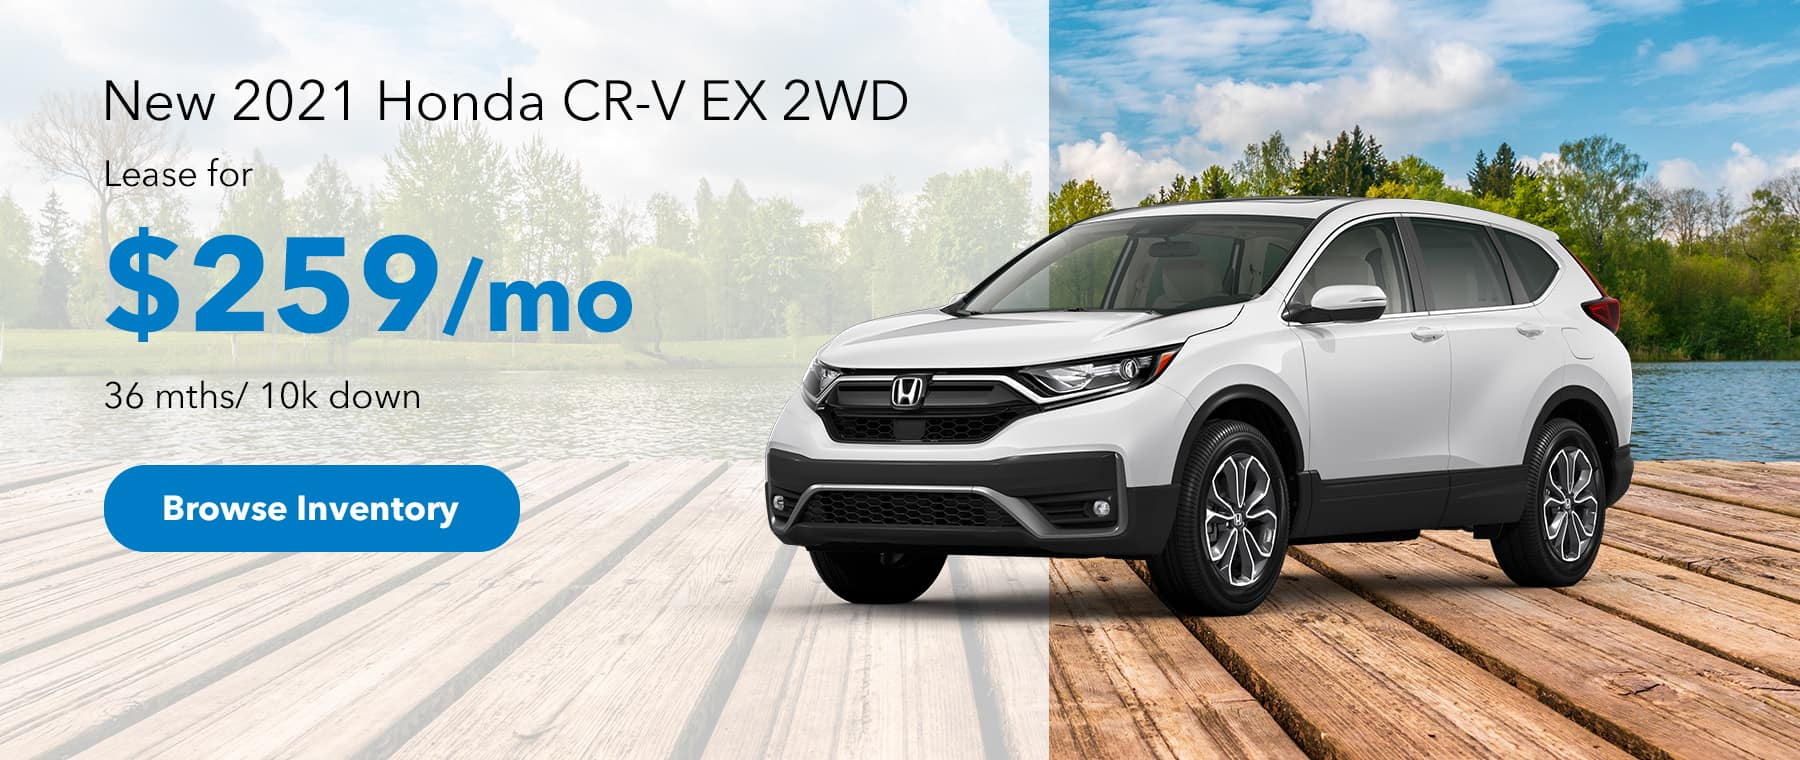 New 2021 Honda CR-V EX 2wd, Lease for 36 mths/ 10k down $259 monthly payment